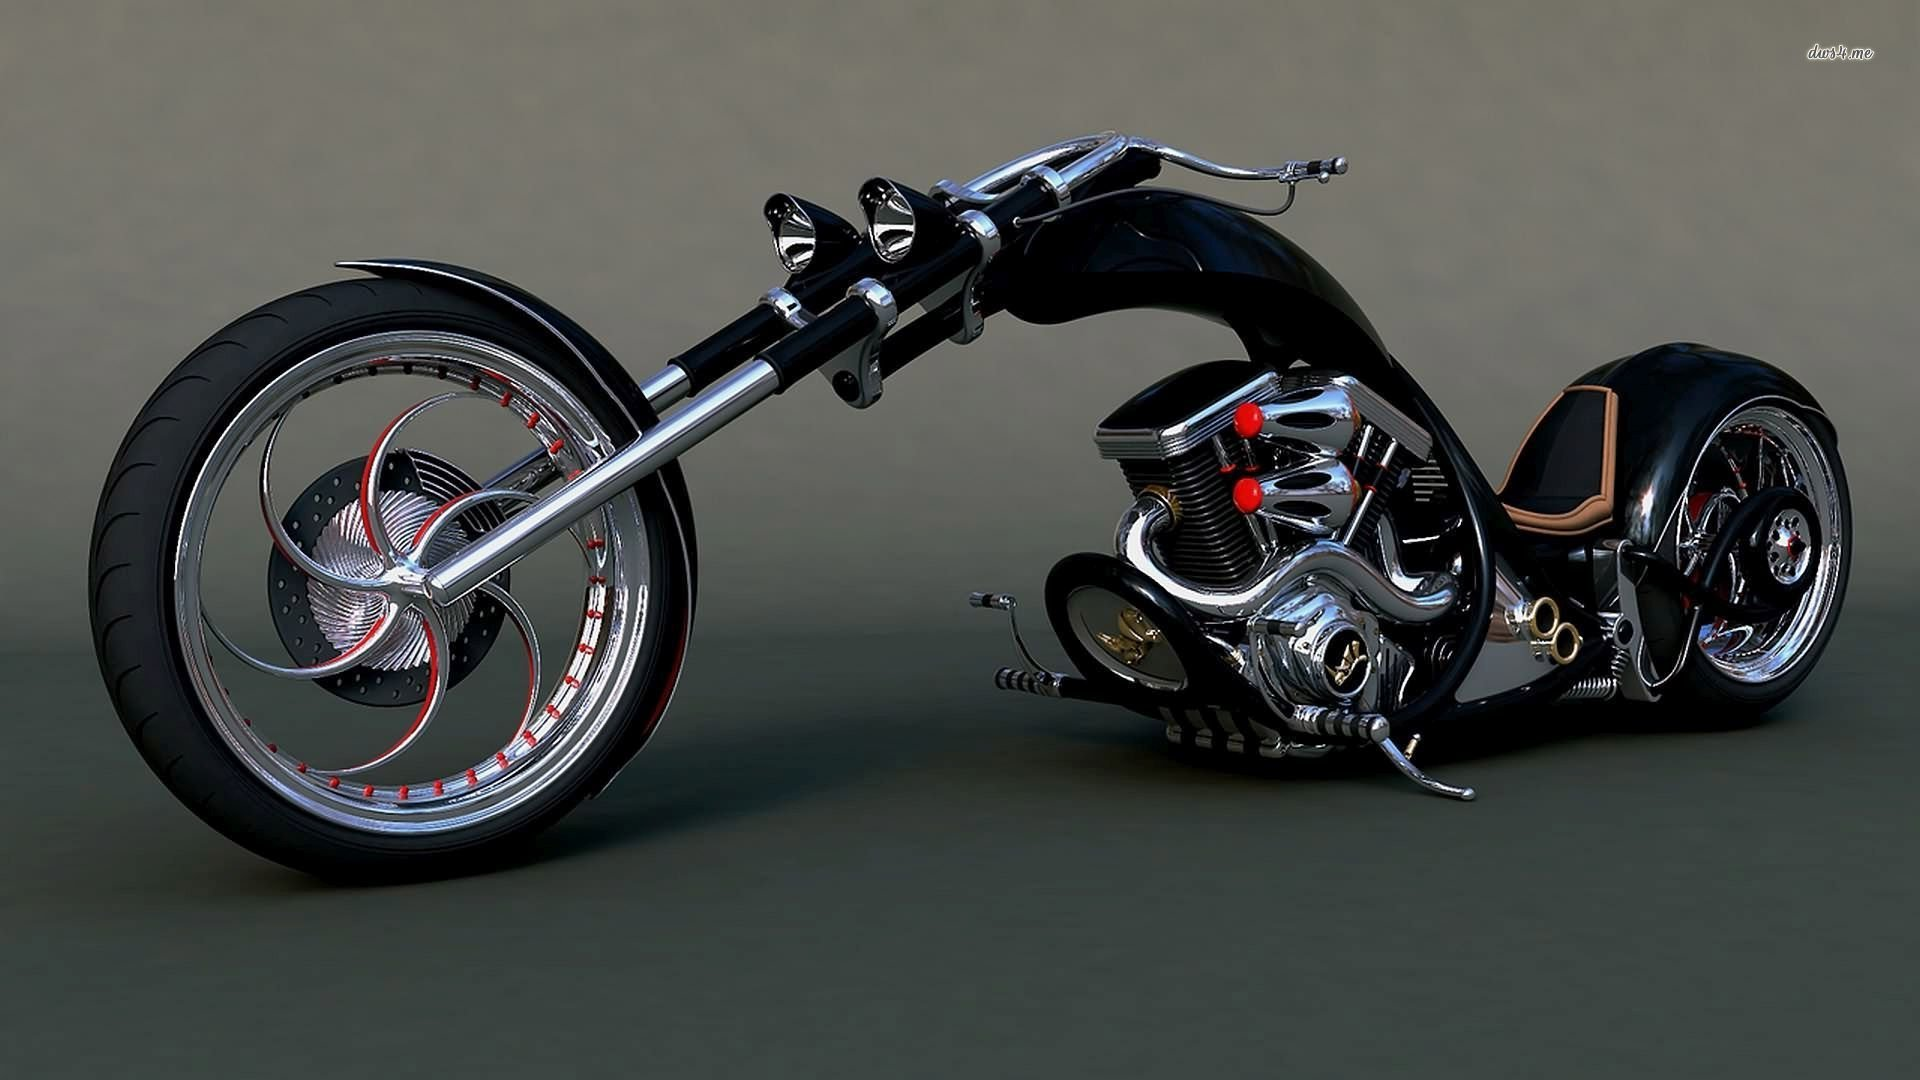 chopper motorcycles wallpaper - photo #24